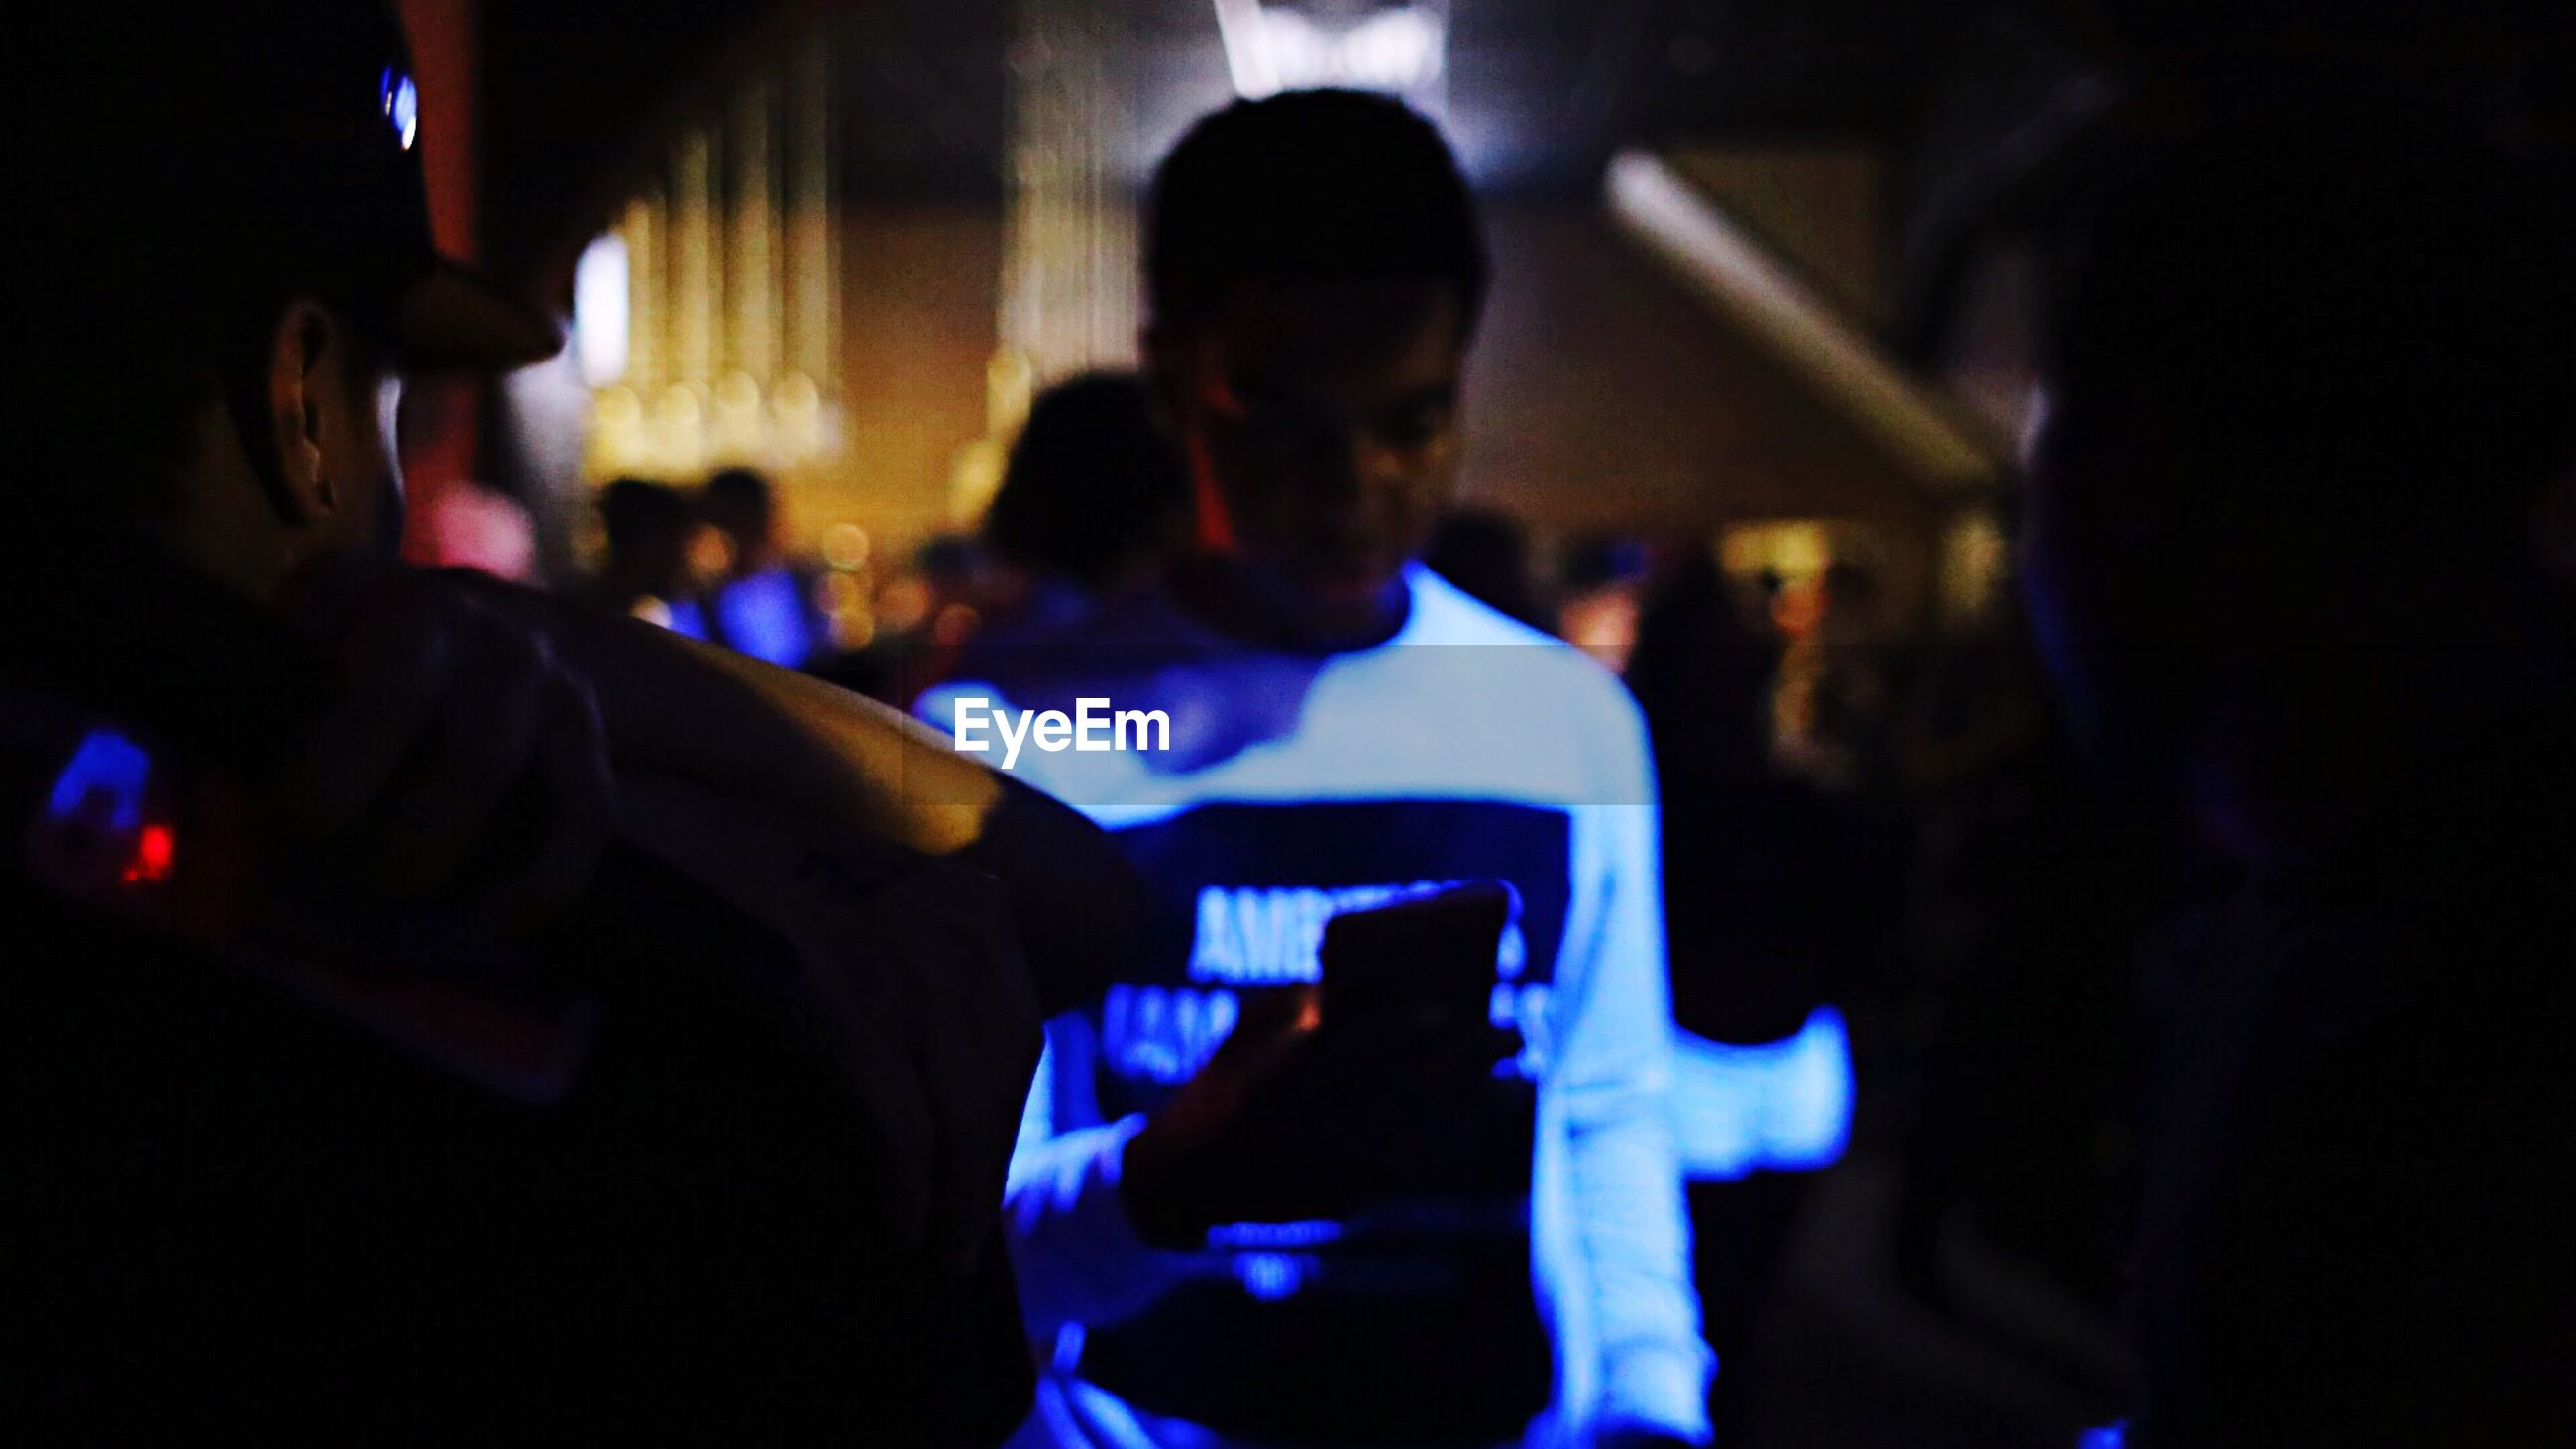 indoors, men, illuminated, lifestyles, technology, leisure activity, night, wireless technology, communication, photographing, music, holding, rear view, person, dark, photography themes, mobile phone, sitting